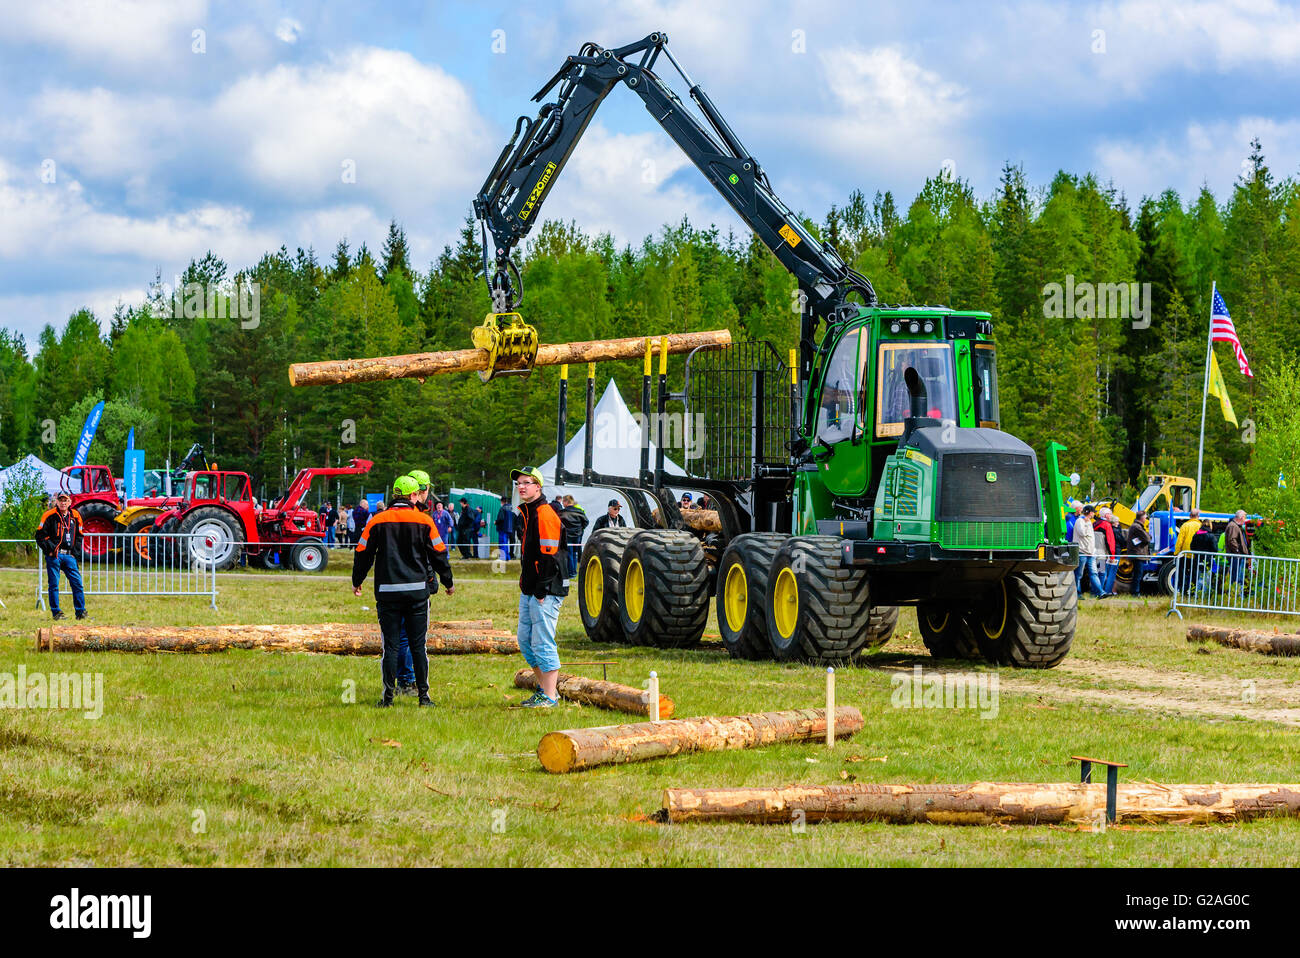 fe1cfd7b05e Emmaboda, Sweden - May 14, 2016: Forest and tractor (Skog och traktor)  fair. John Deere 1110E forwarder used in driving competit